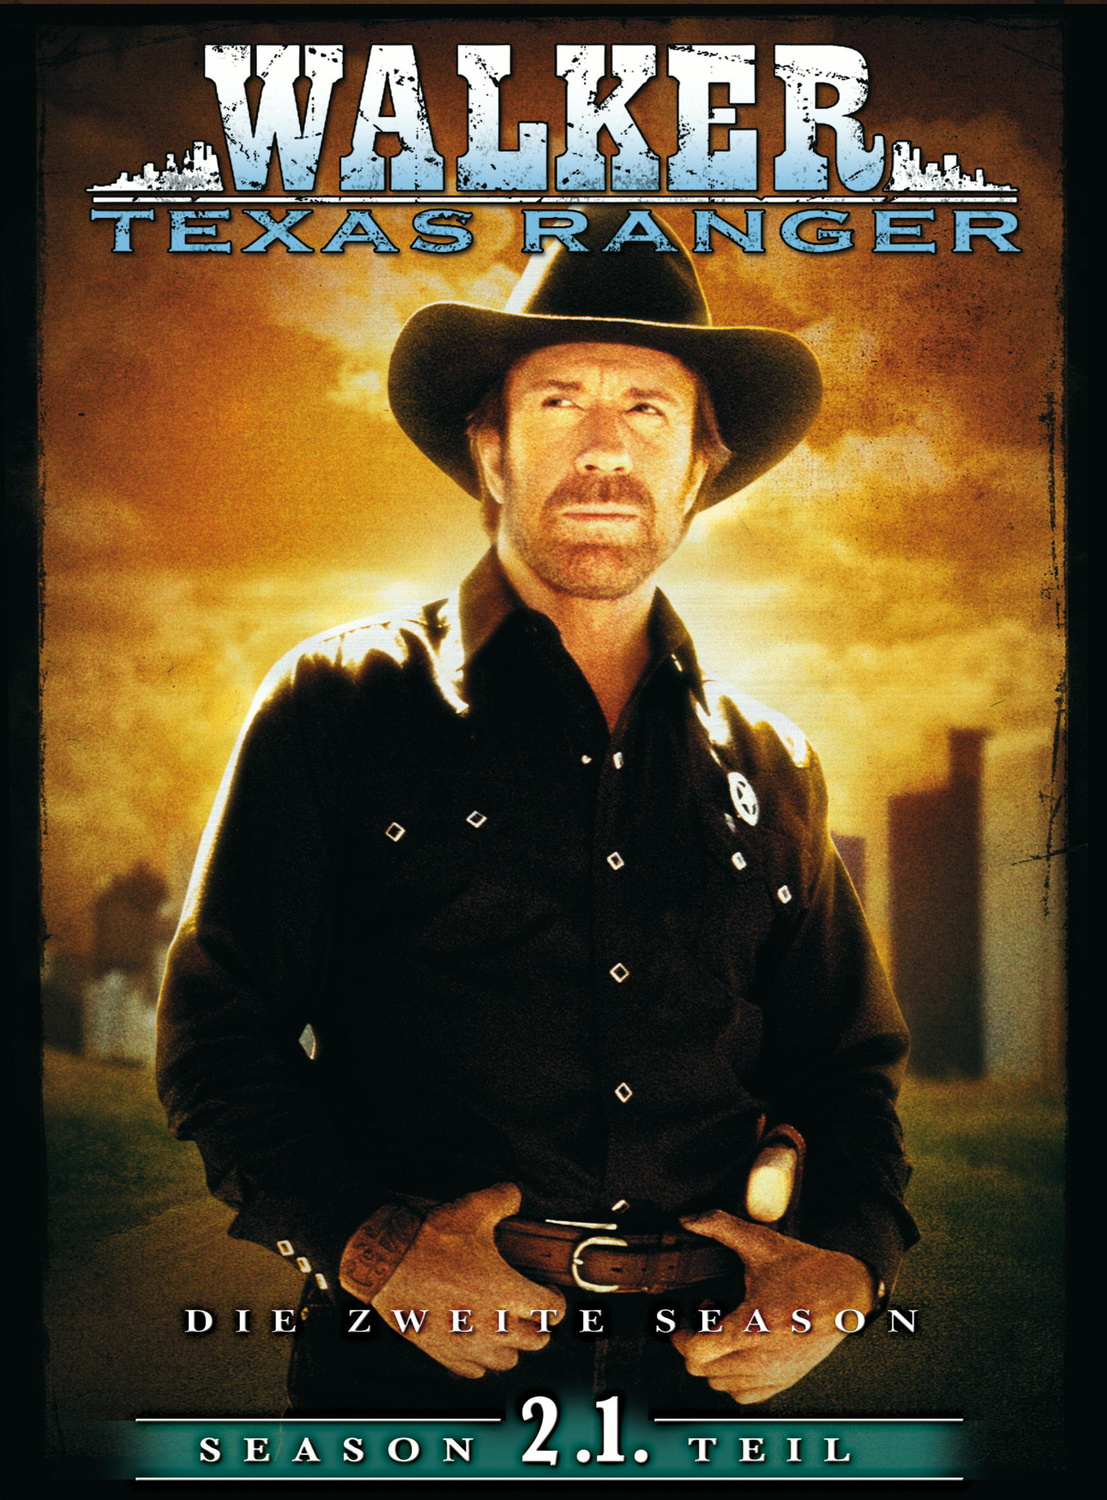 Walker Texas Ranger - Season 2.1